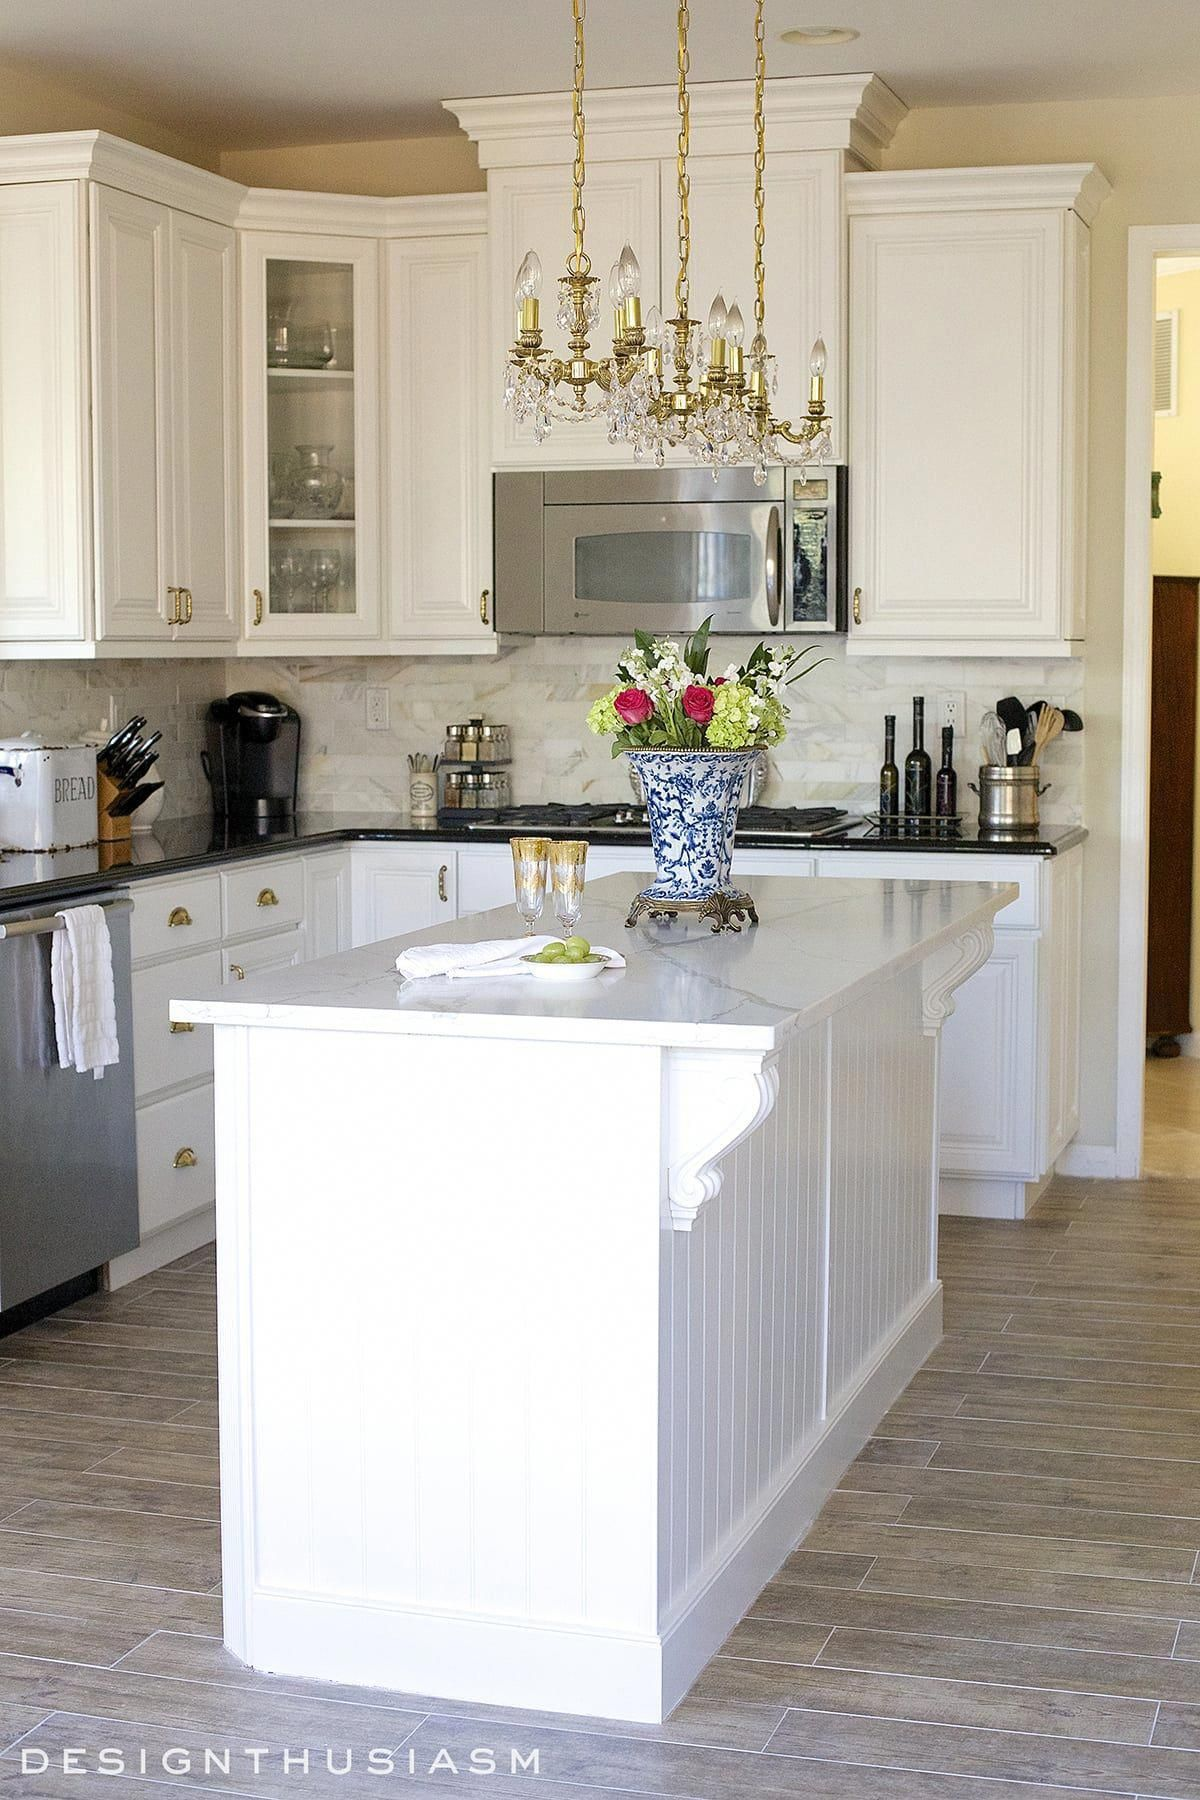 Dramatic Kitchen Renovation Without Removing Cabinets Designthusiasm Com Diykitchenideas In 2020 Replacing Kitchen Countertops Kitchen Renovation Kitchen Remodel